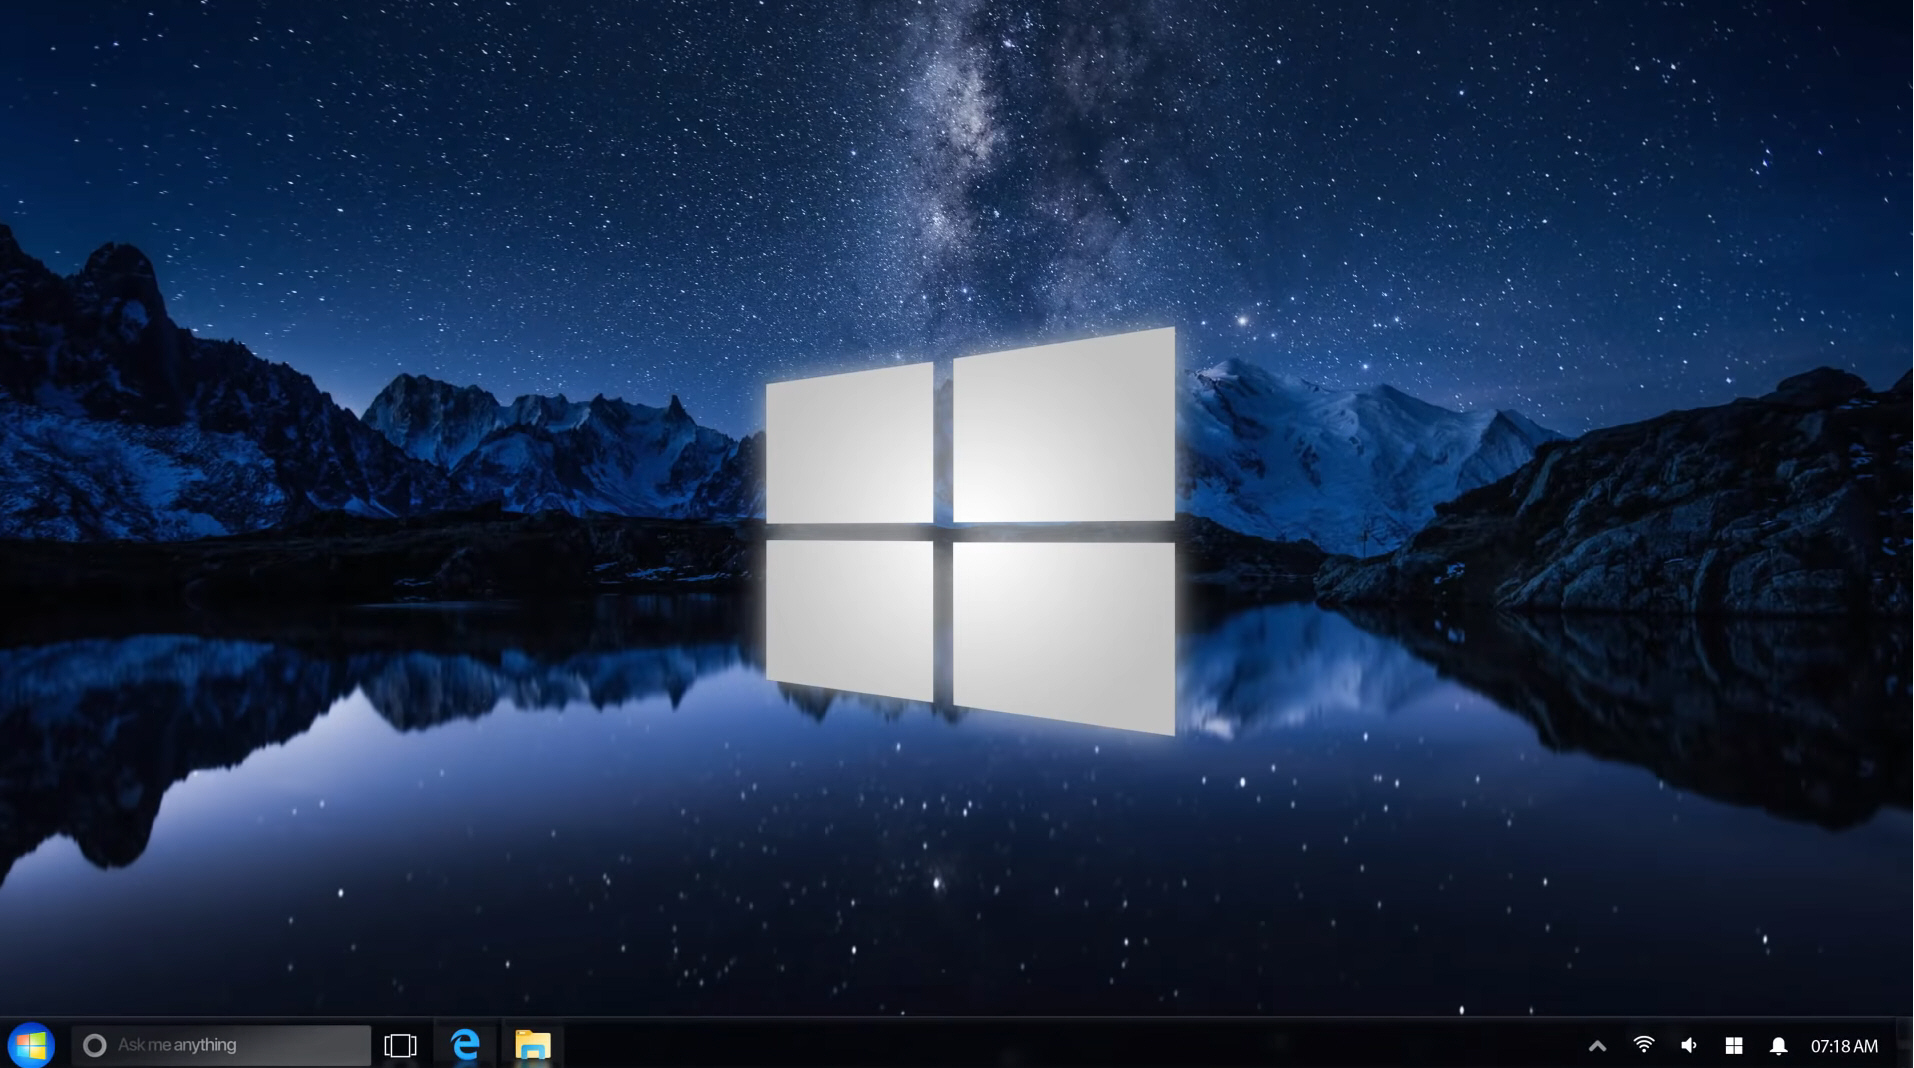 Windows 10: Show file extensions - that's how it works